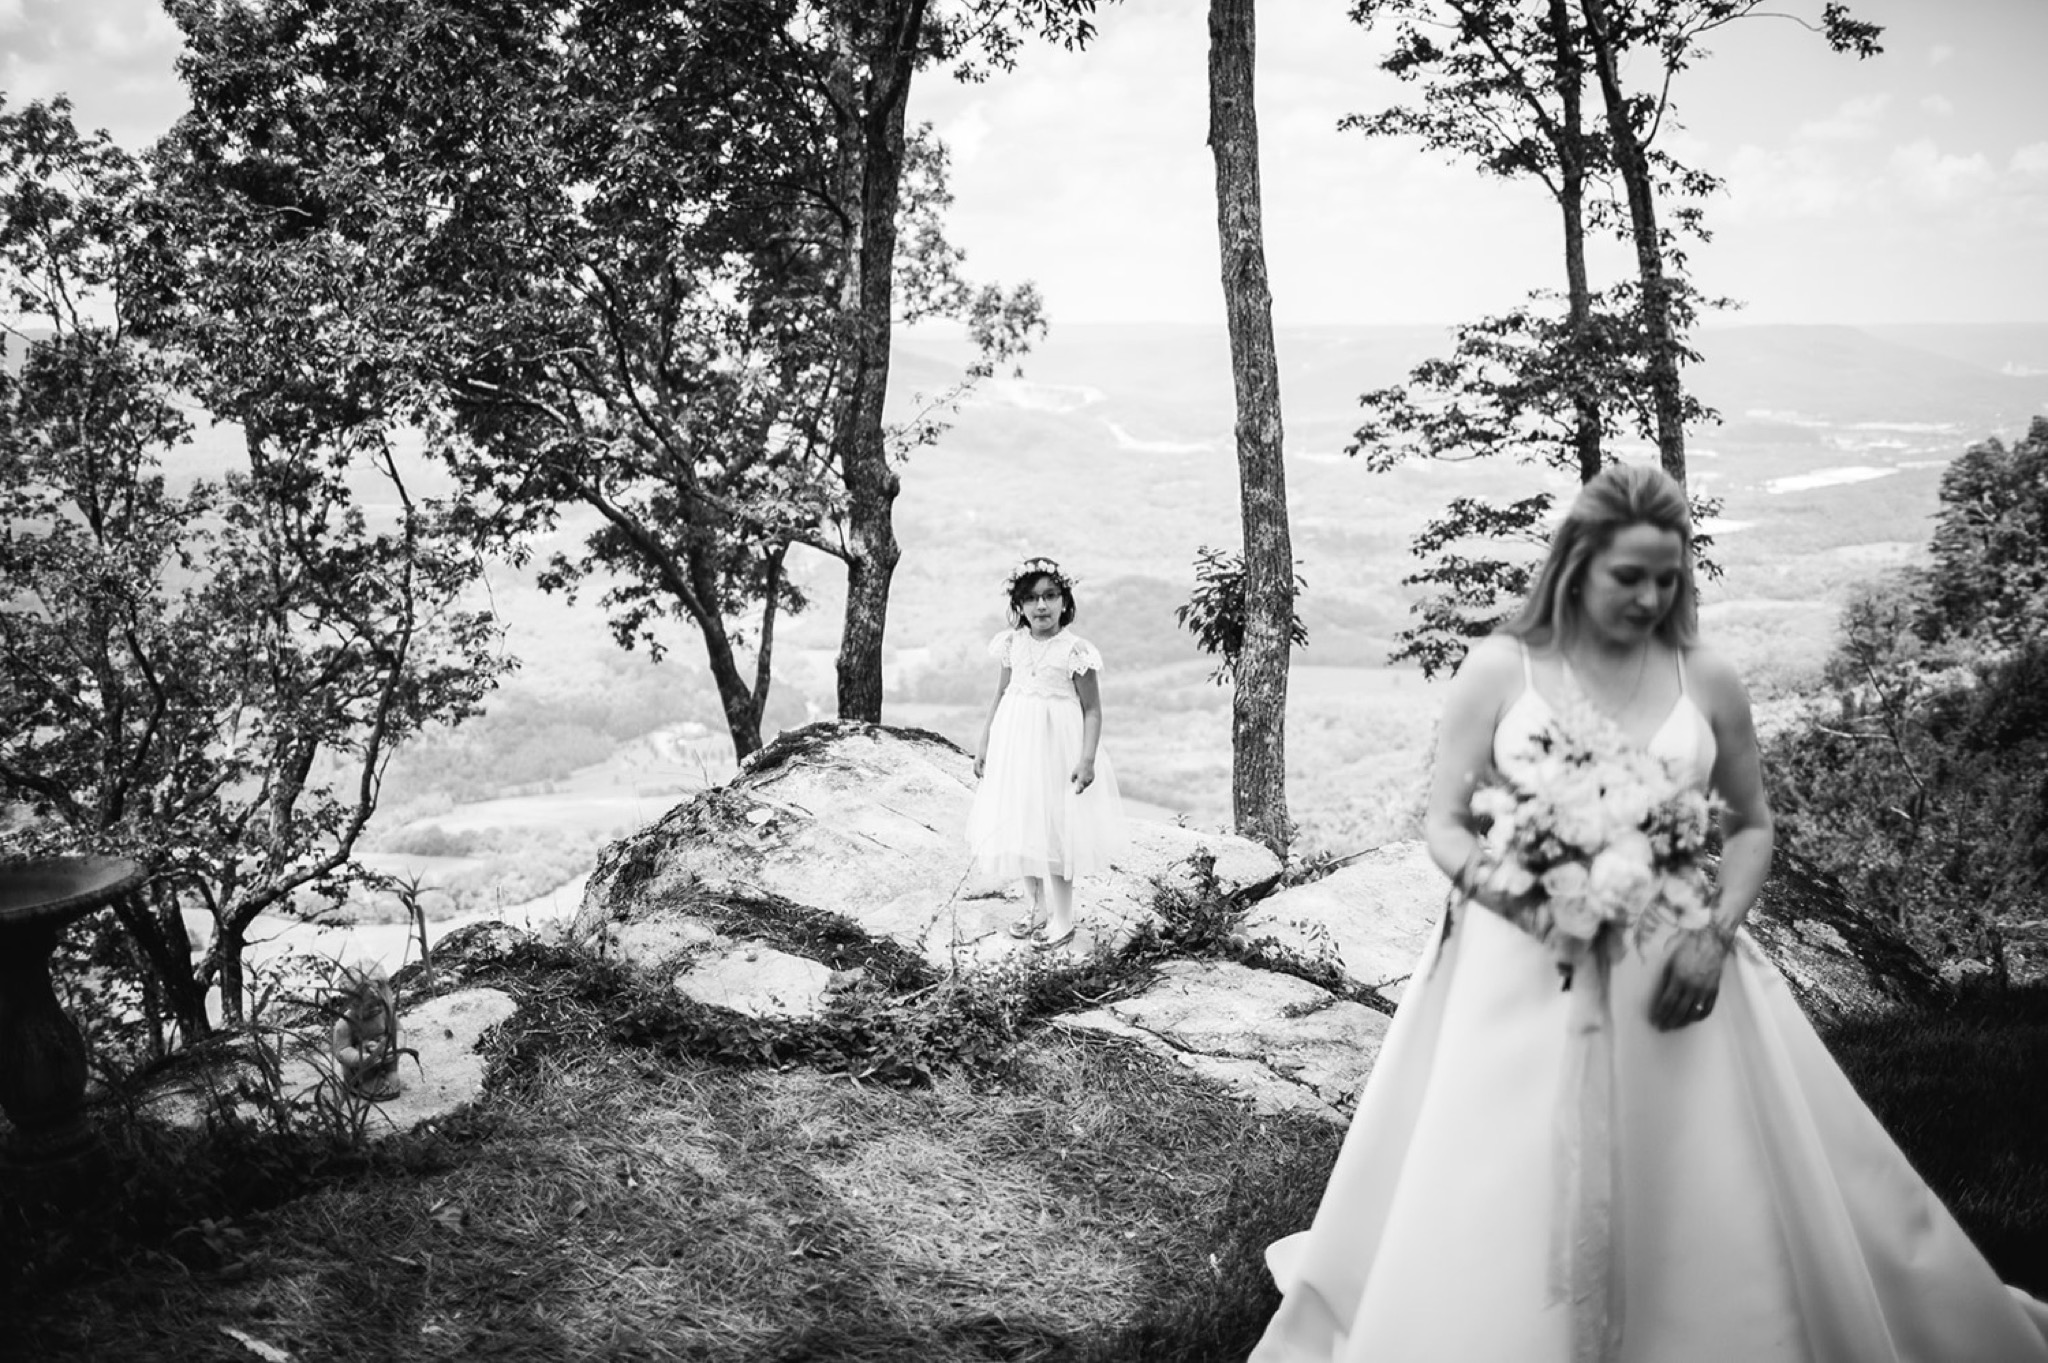 small girl stands on a large rock at the edge of cliffside overlook while bride holds bouquet of flowers in front of her